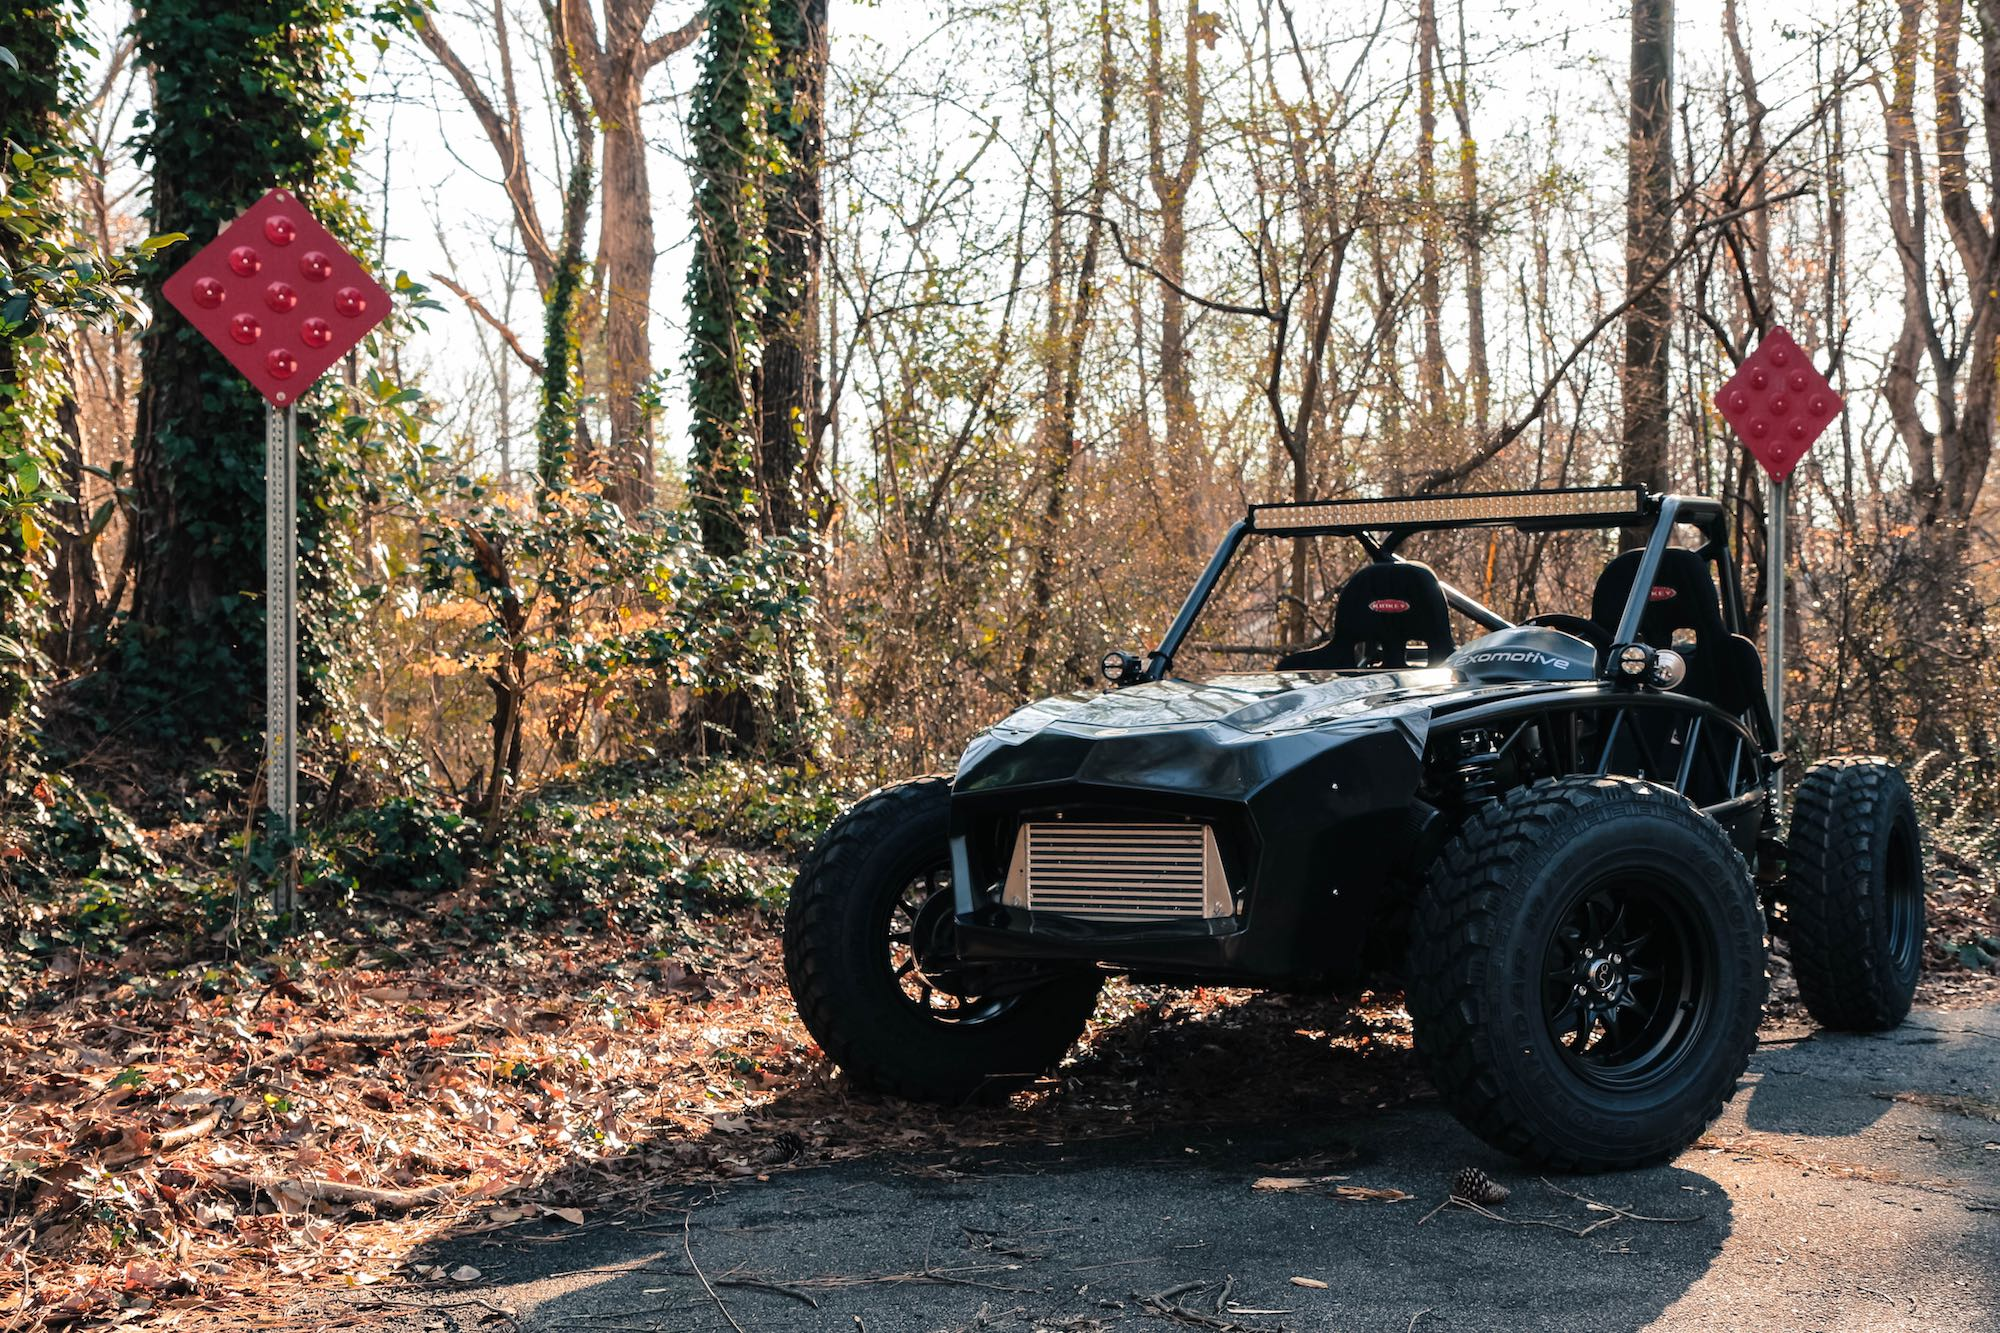 Exomotive Us Manufacturer Of Exocars Kit Cars Exocet Off Road Diy Vw Wiring Harness Gallery